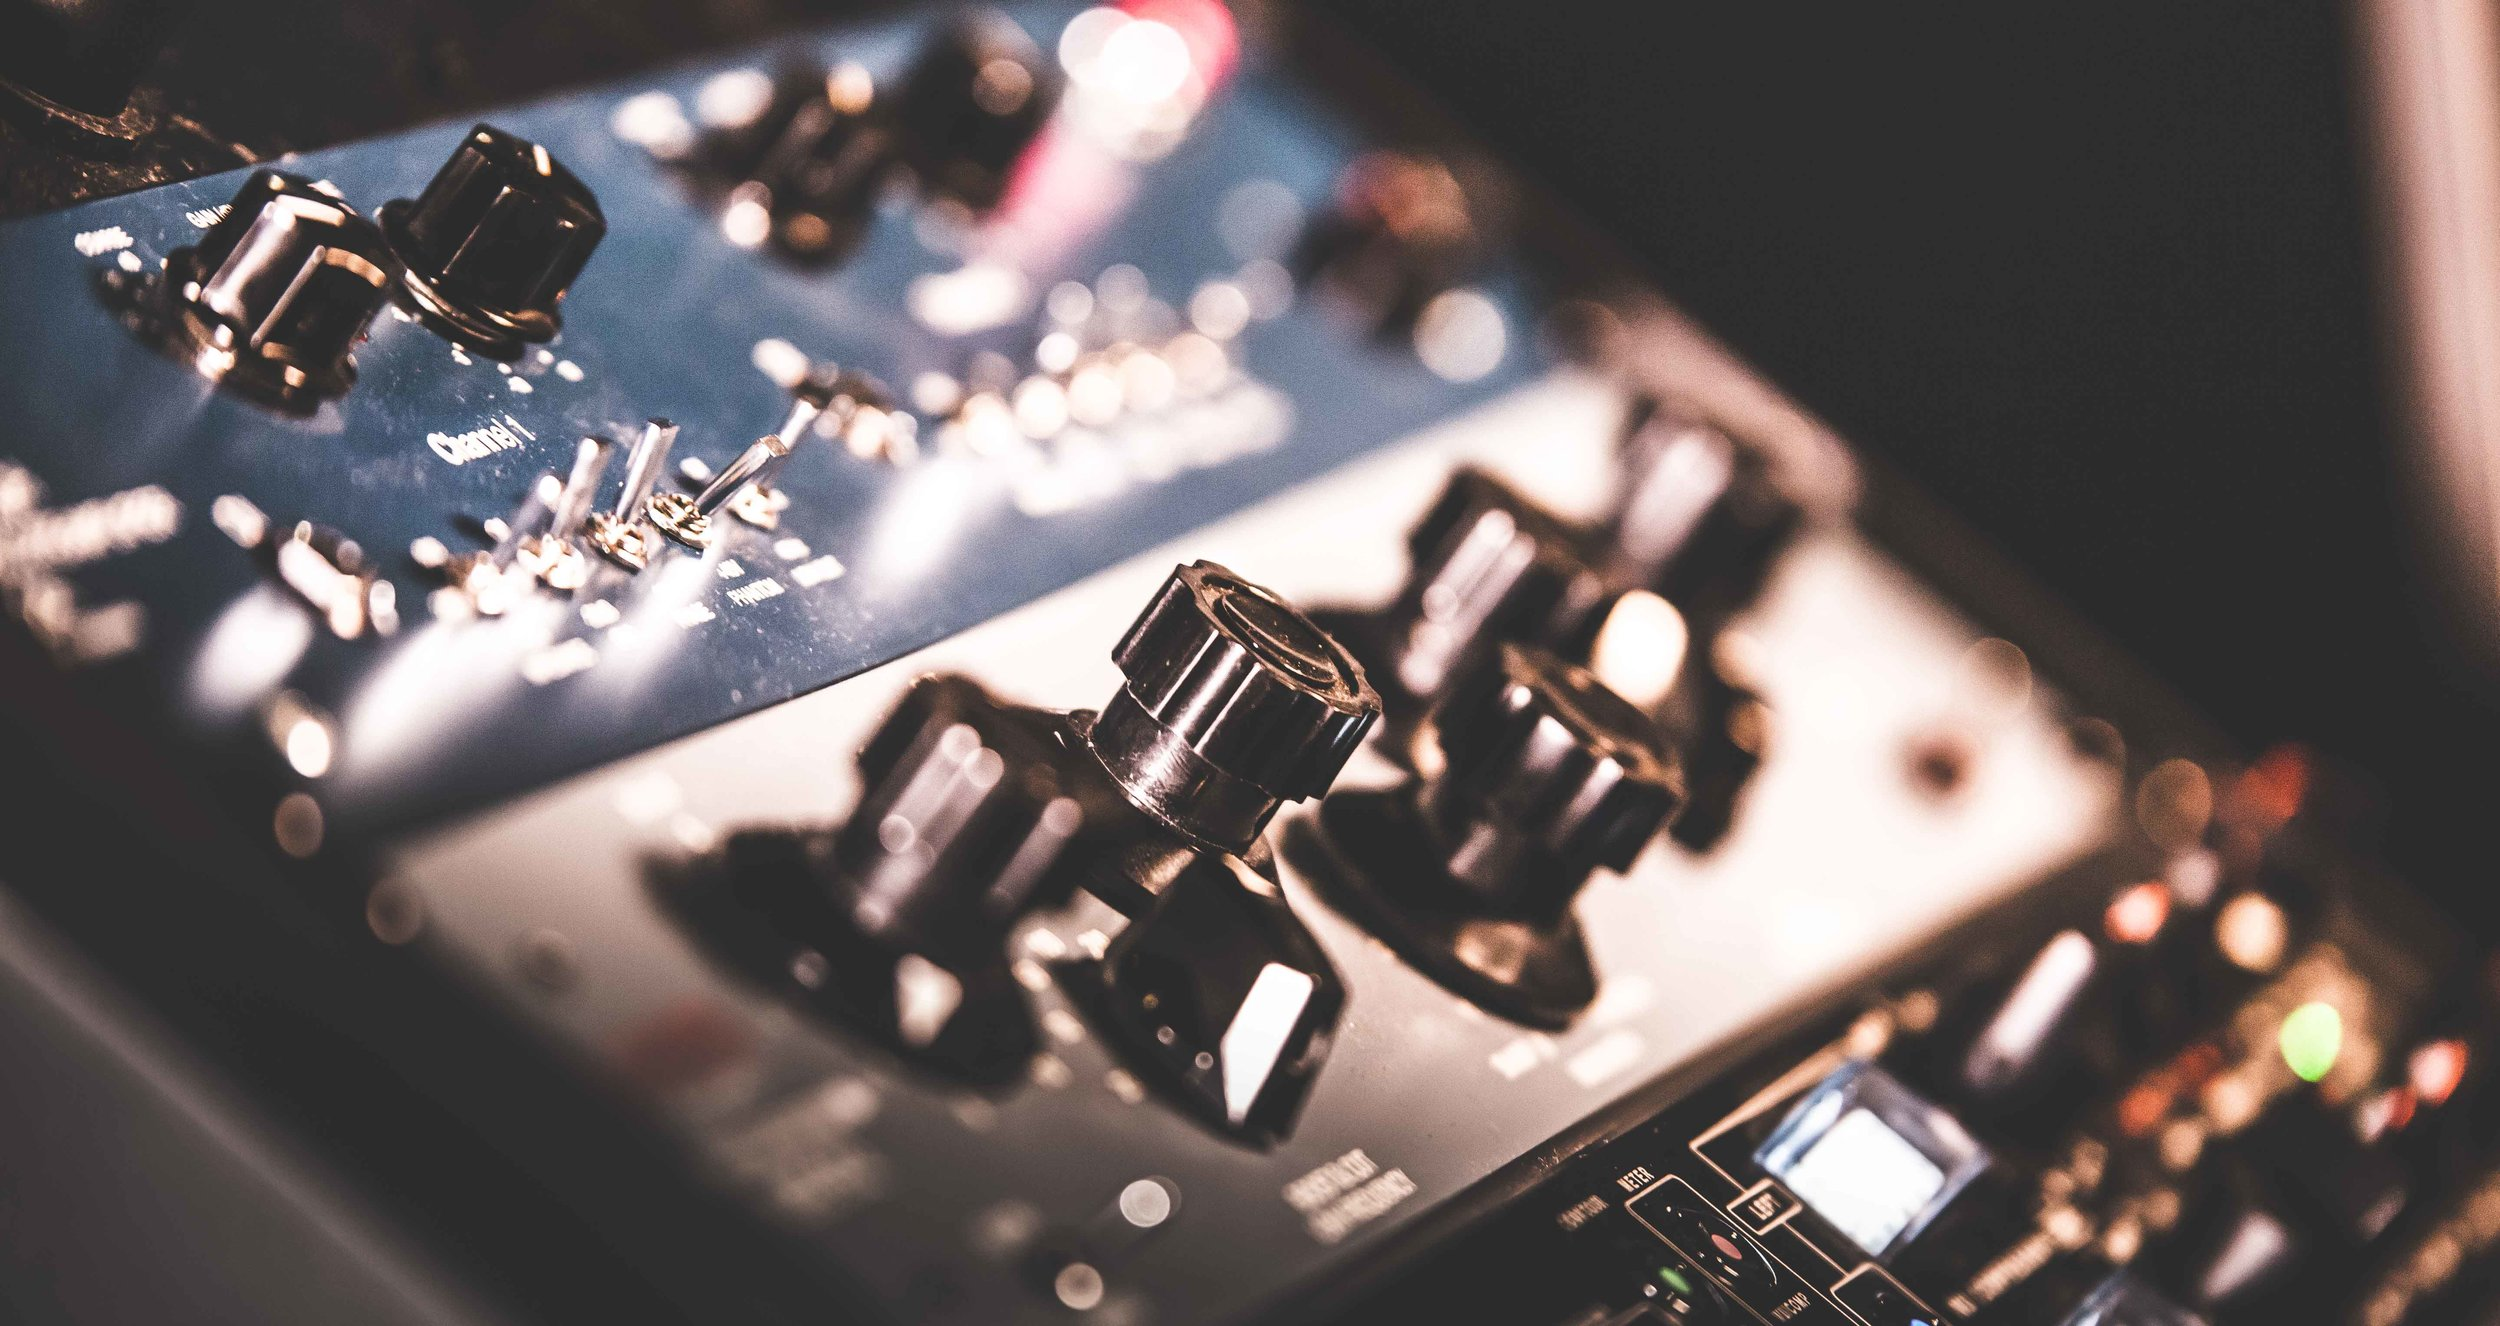 Audio Mixdown - Audio mixing is the process by which multiple sounds are combined into one final audio file. In this process, we will enhance each of your channels volume level, dynamics, frequency content, and panoramic position to prepare your song for the final mastering process.